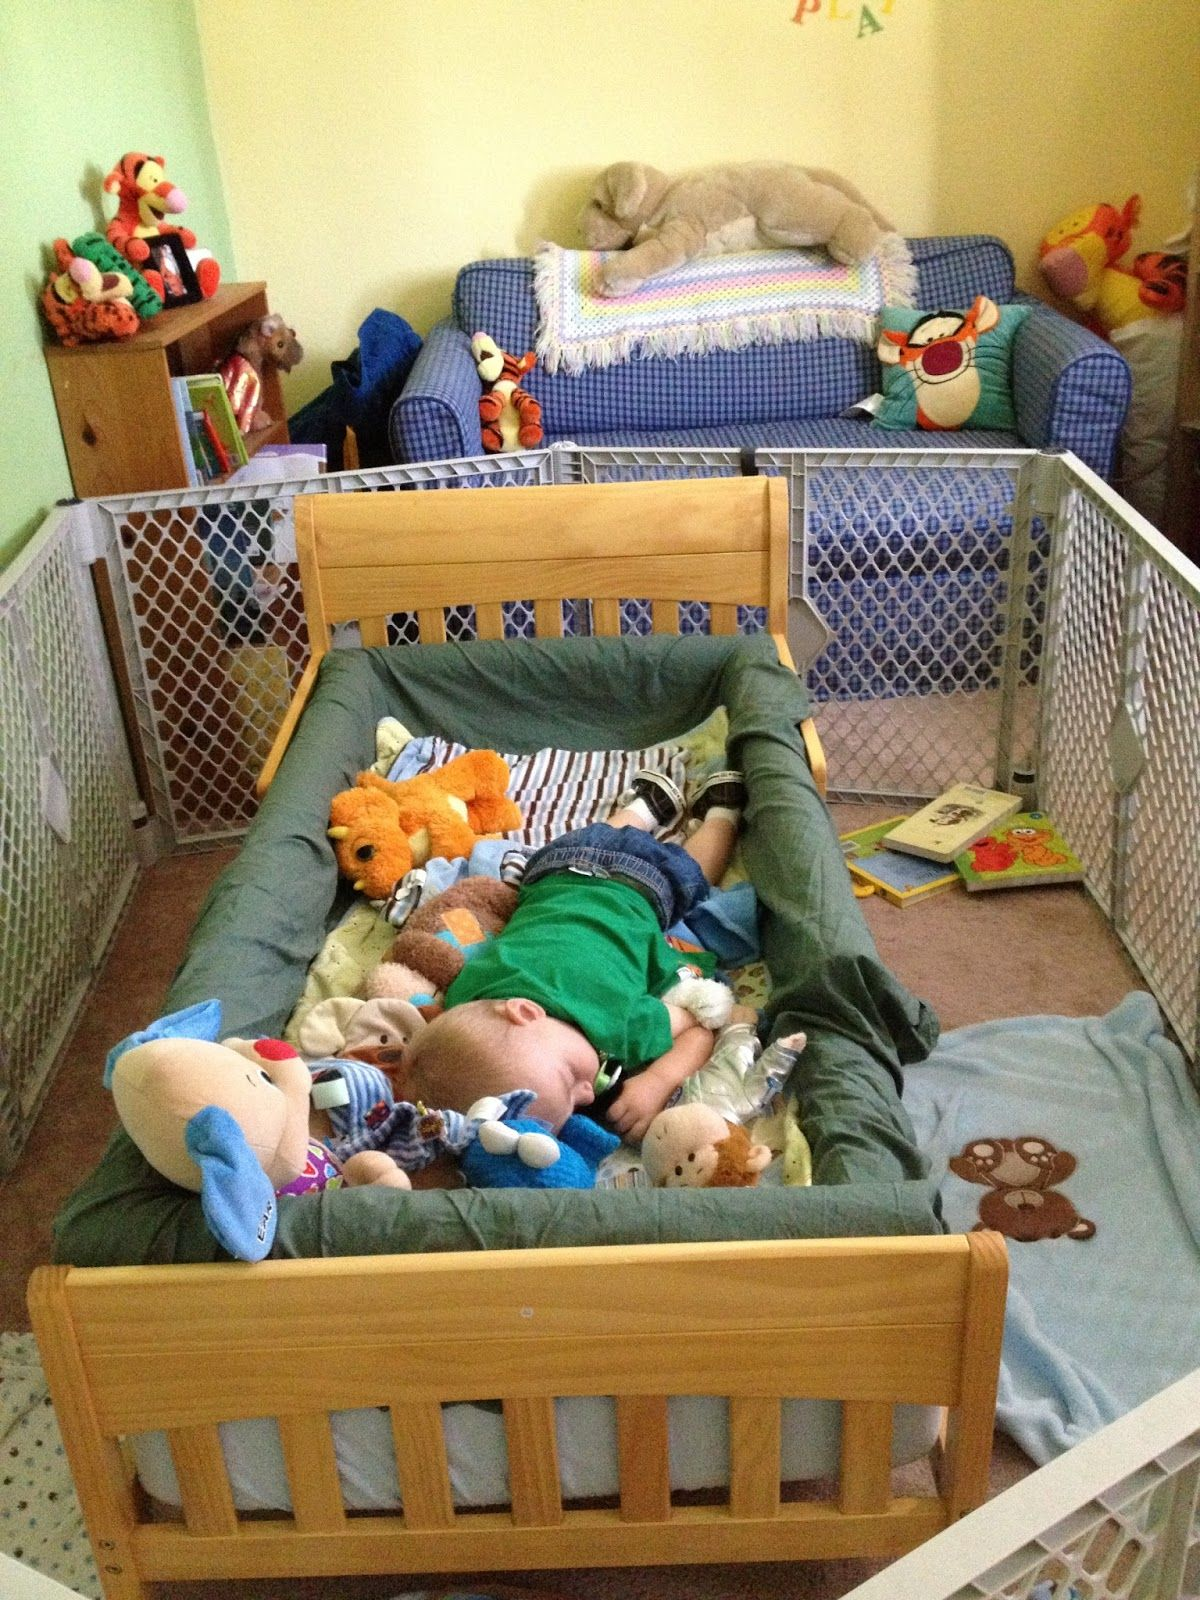 Pool Noodle Bed Rail And I Never Once Thought Of Using A Baby Gate To Keep The Child From Running In An Out Room Genius